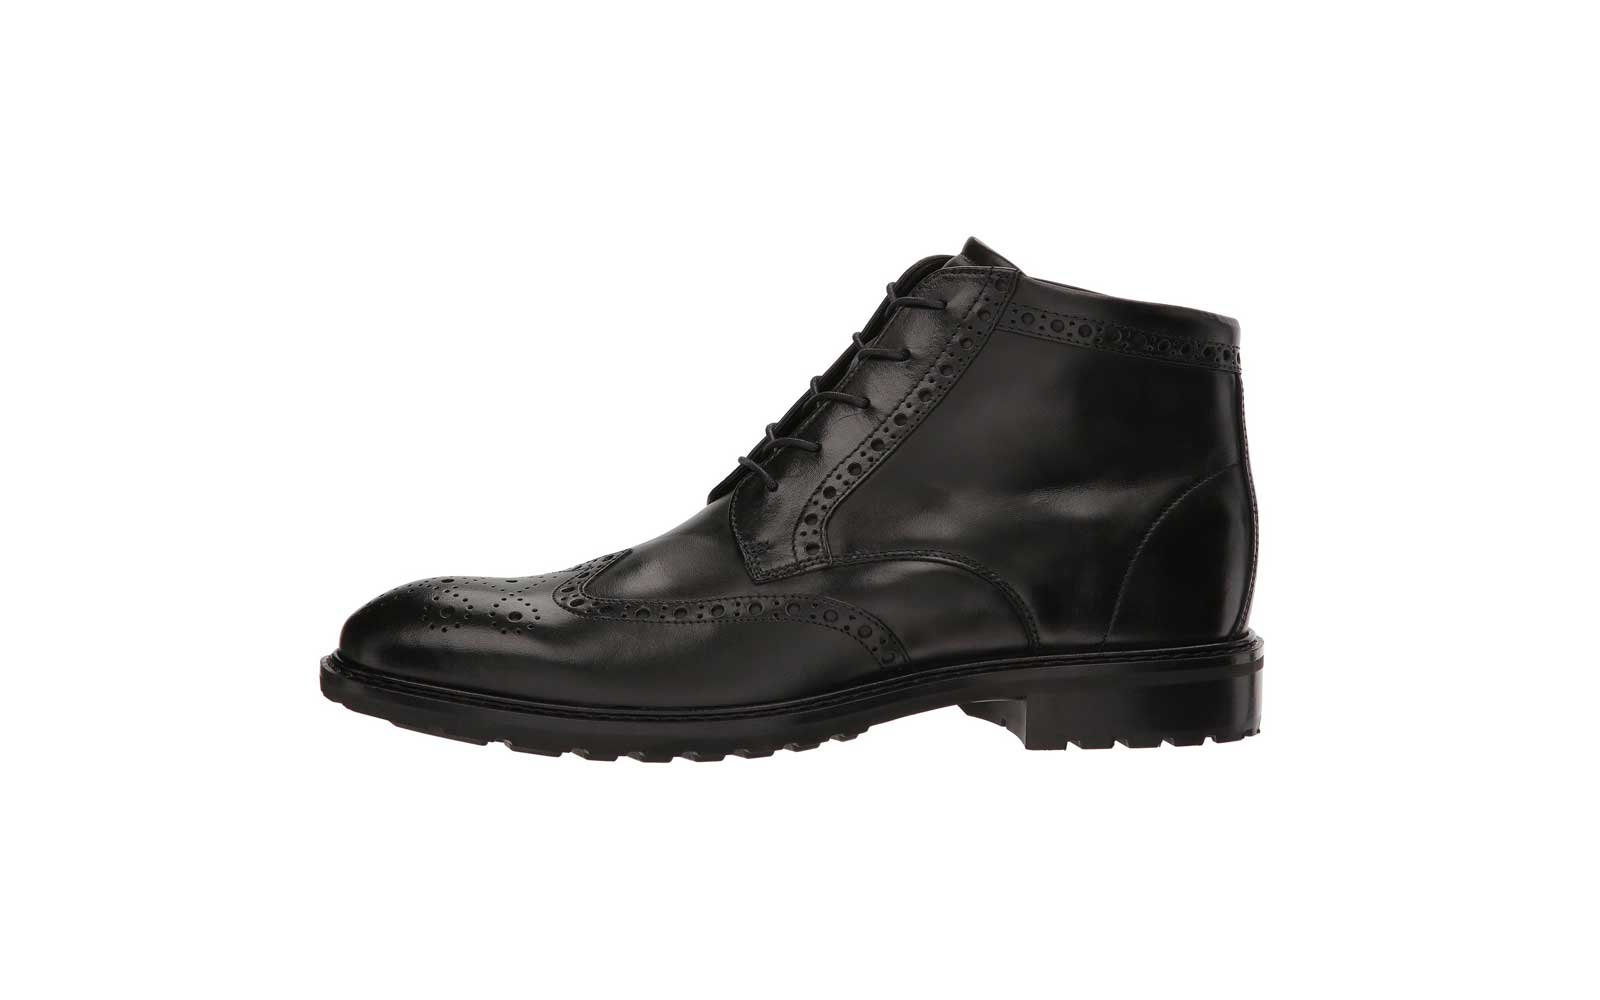 dress - Dress Black boots for men pictures video